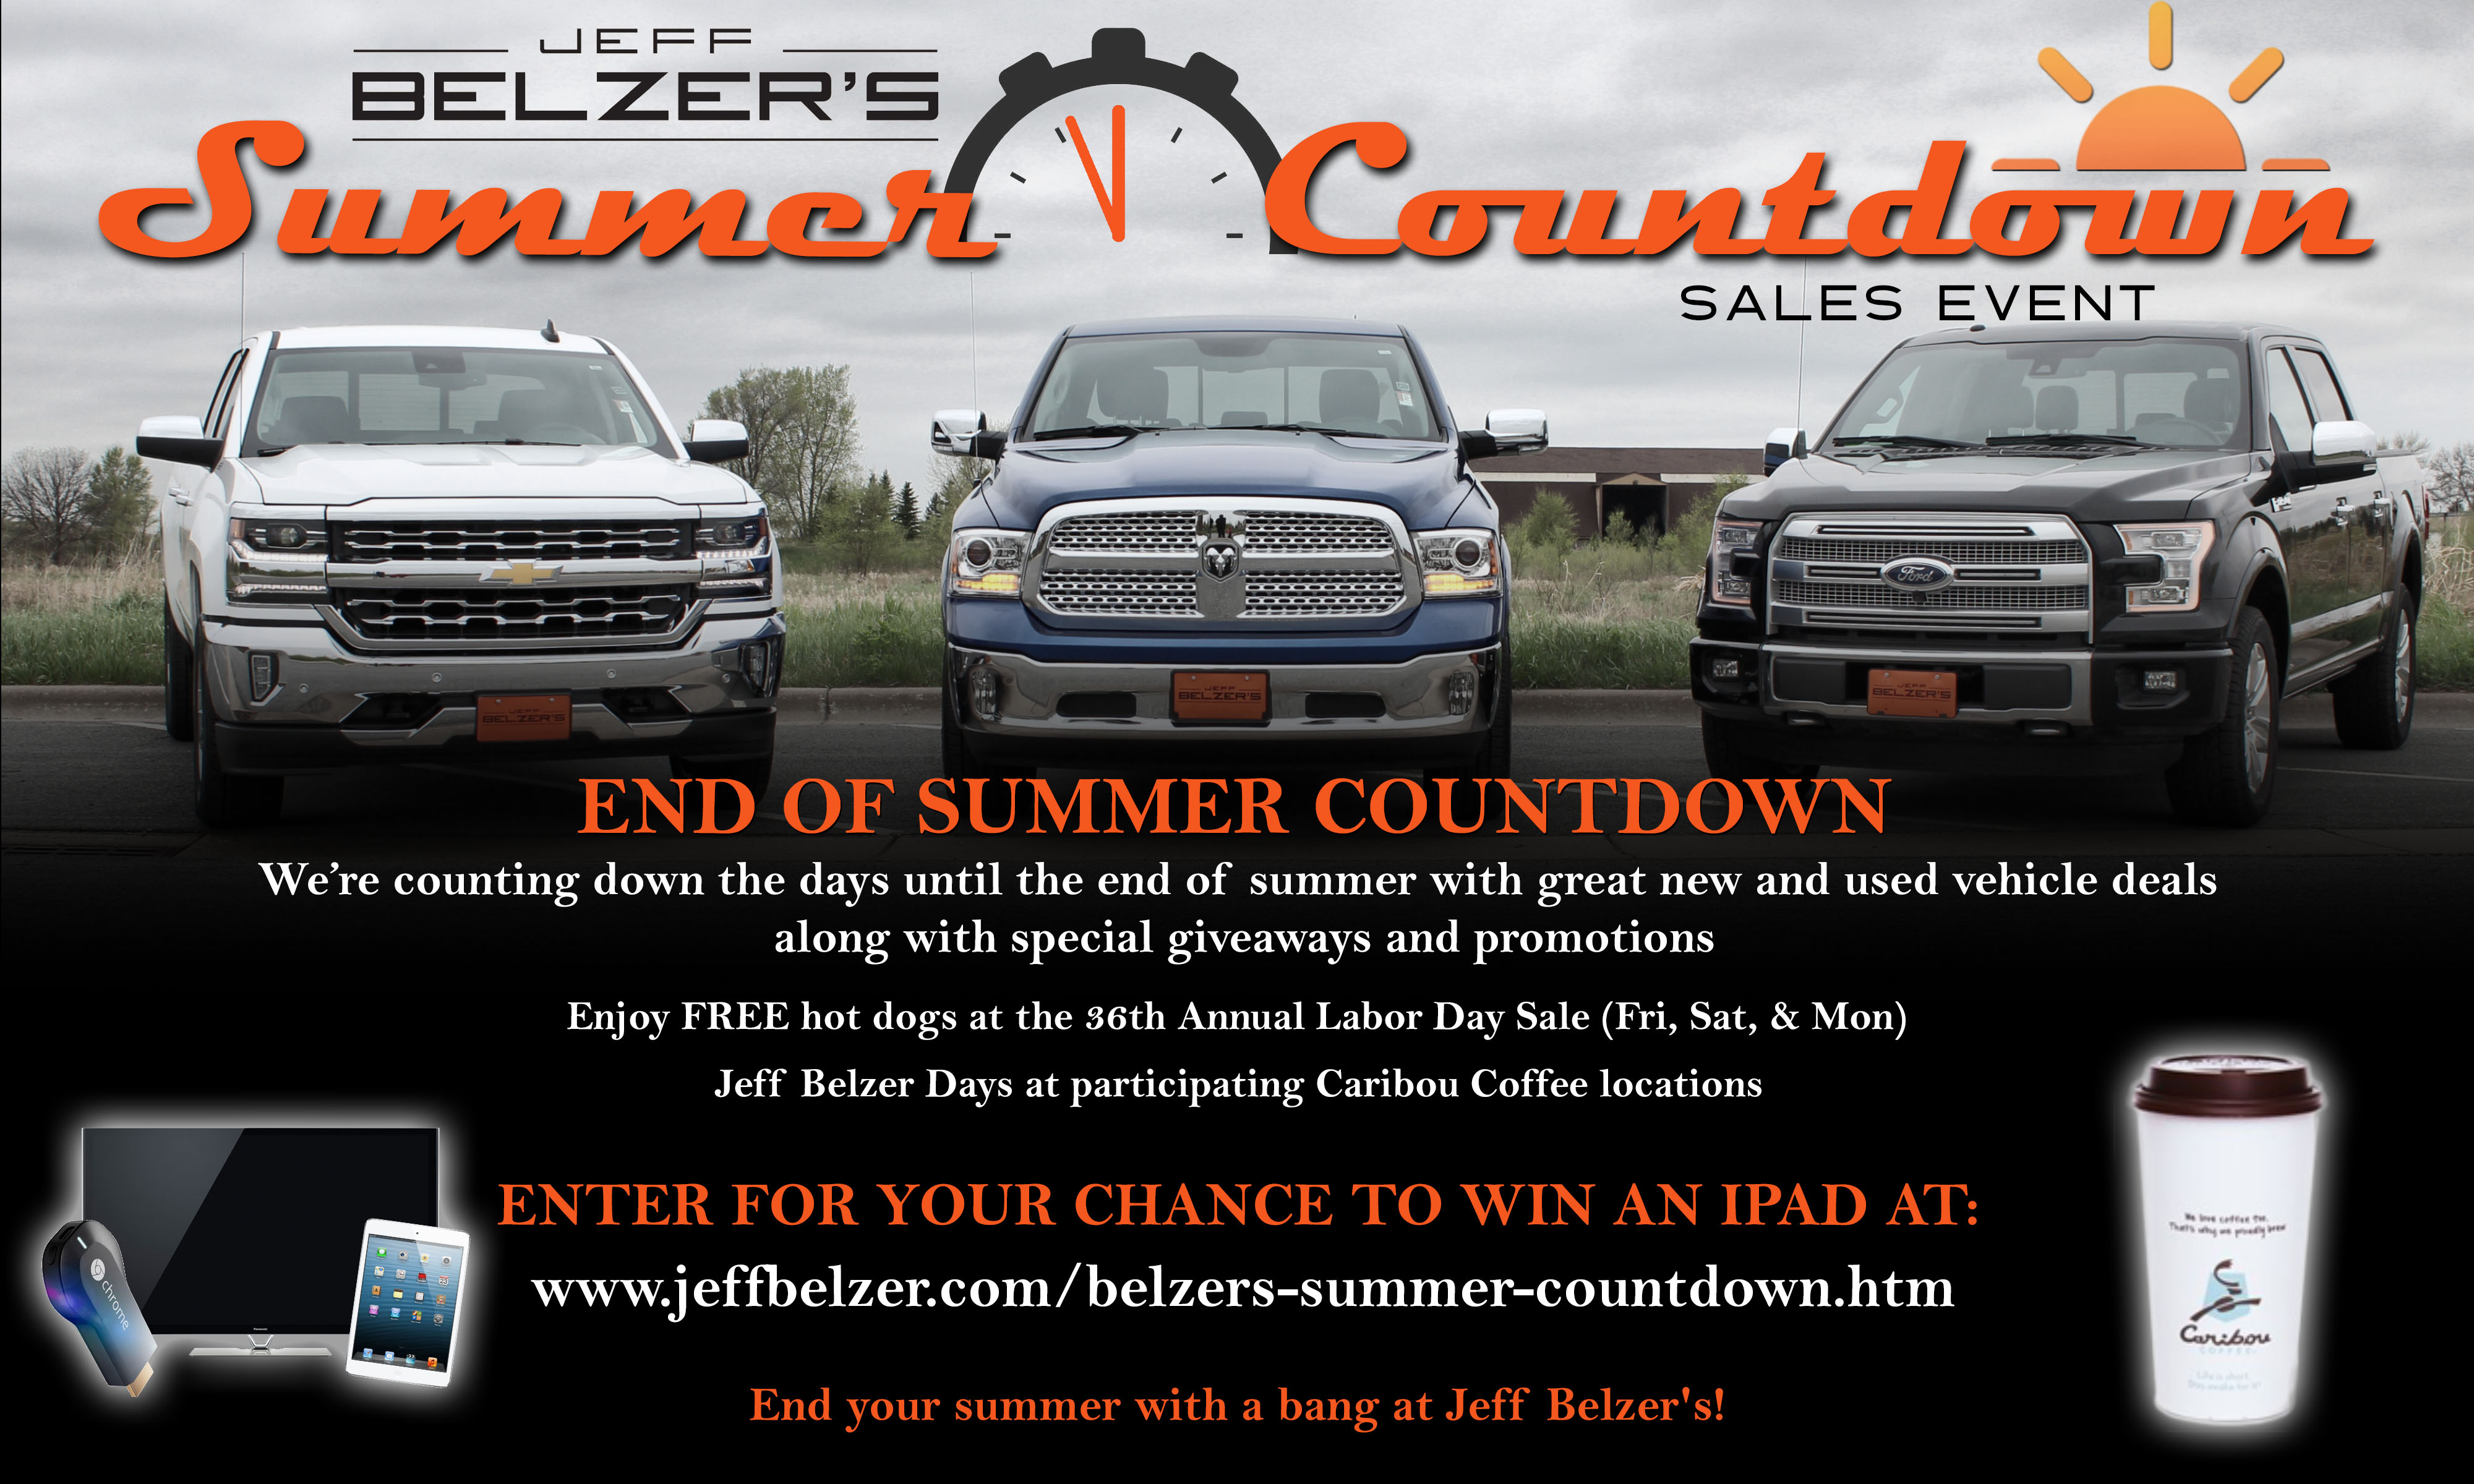 Used car giveaways